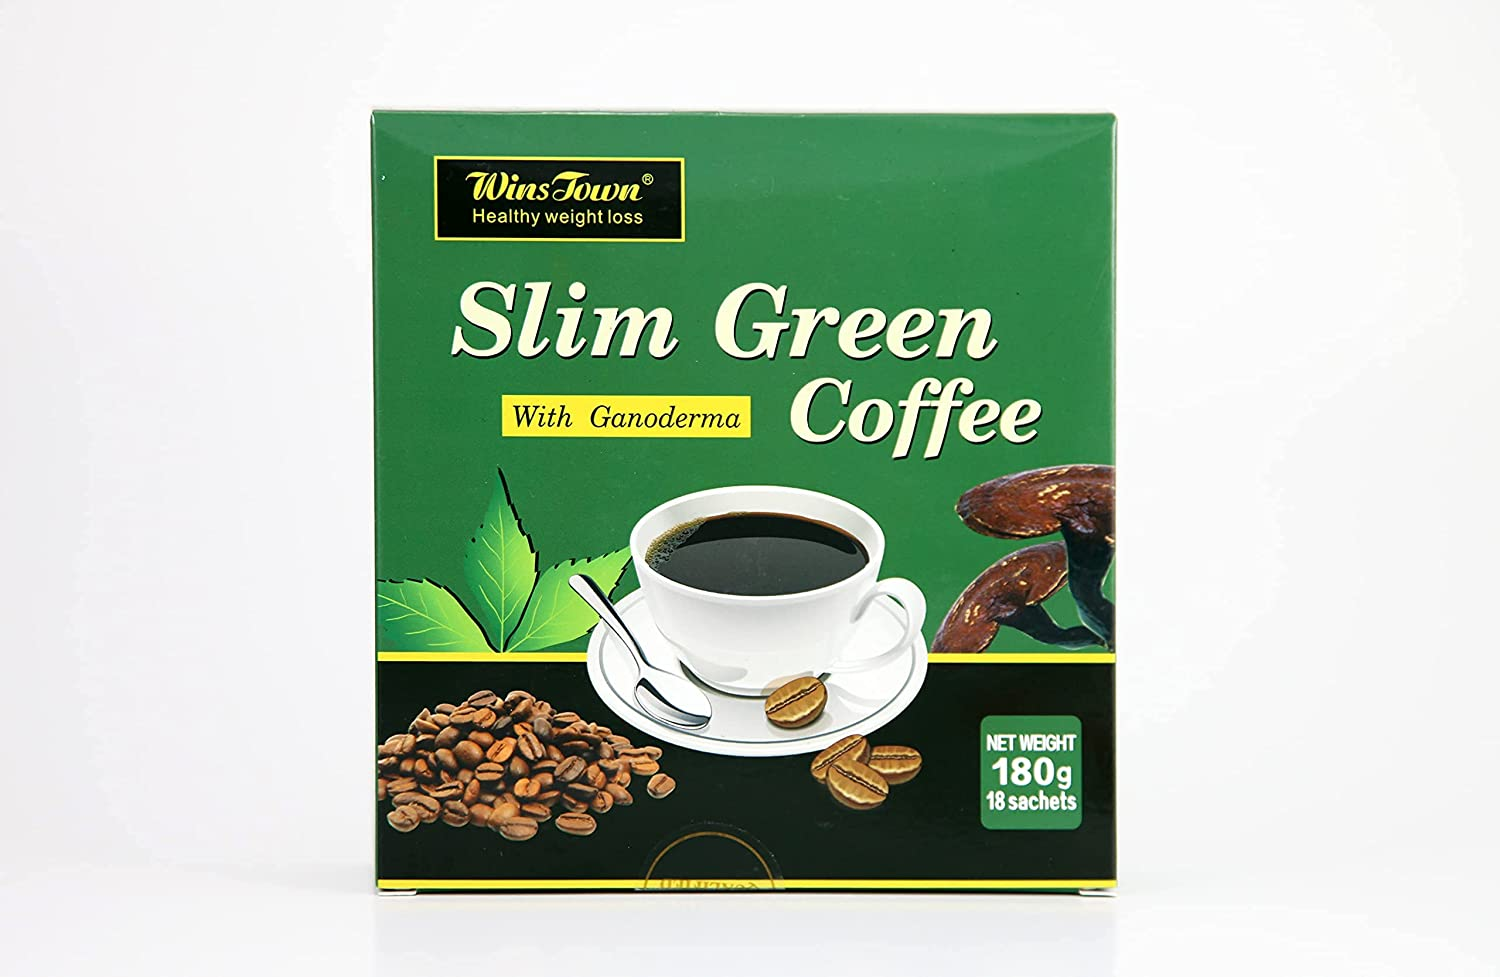 Weight Loss Slim Green Branded goods coffee with Ganoderma Women Men and Direct store for T